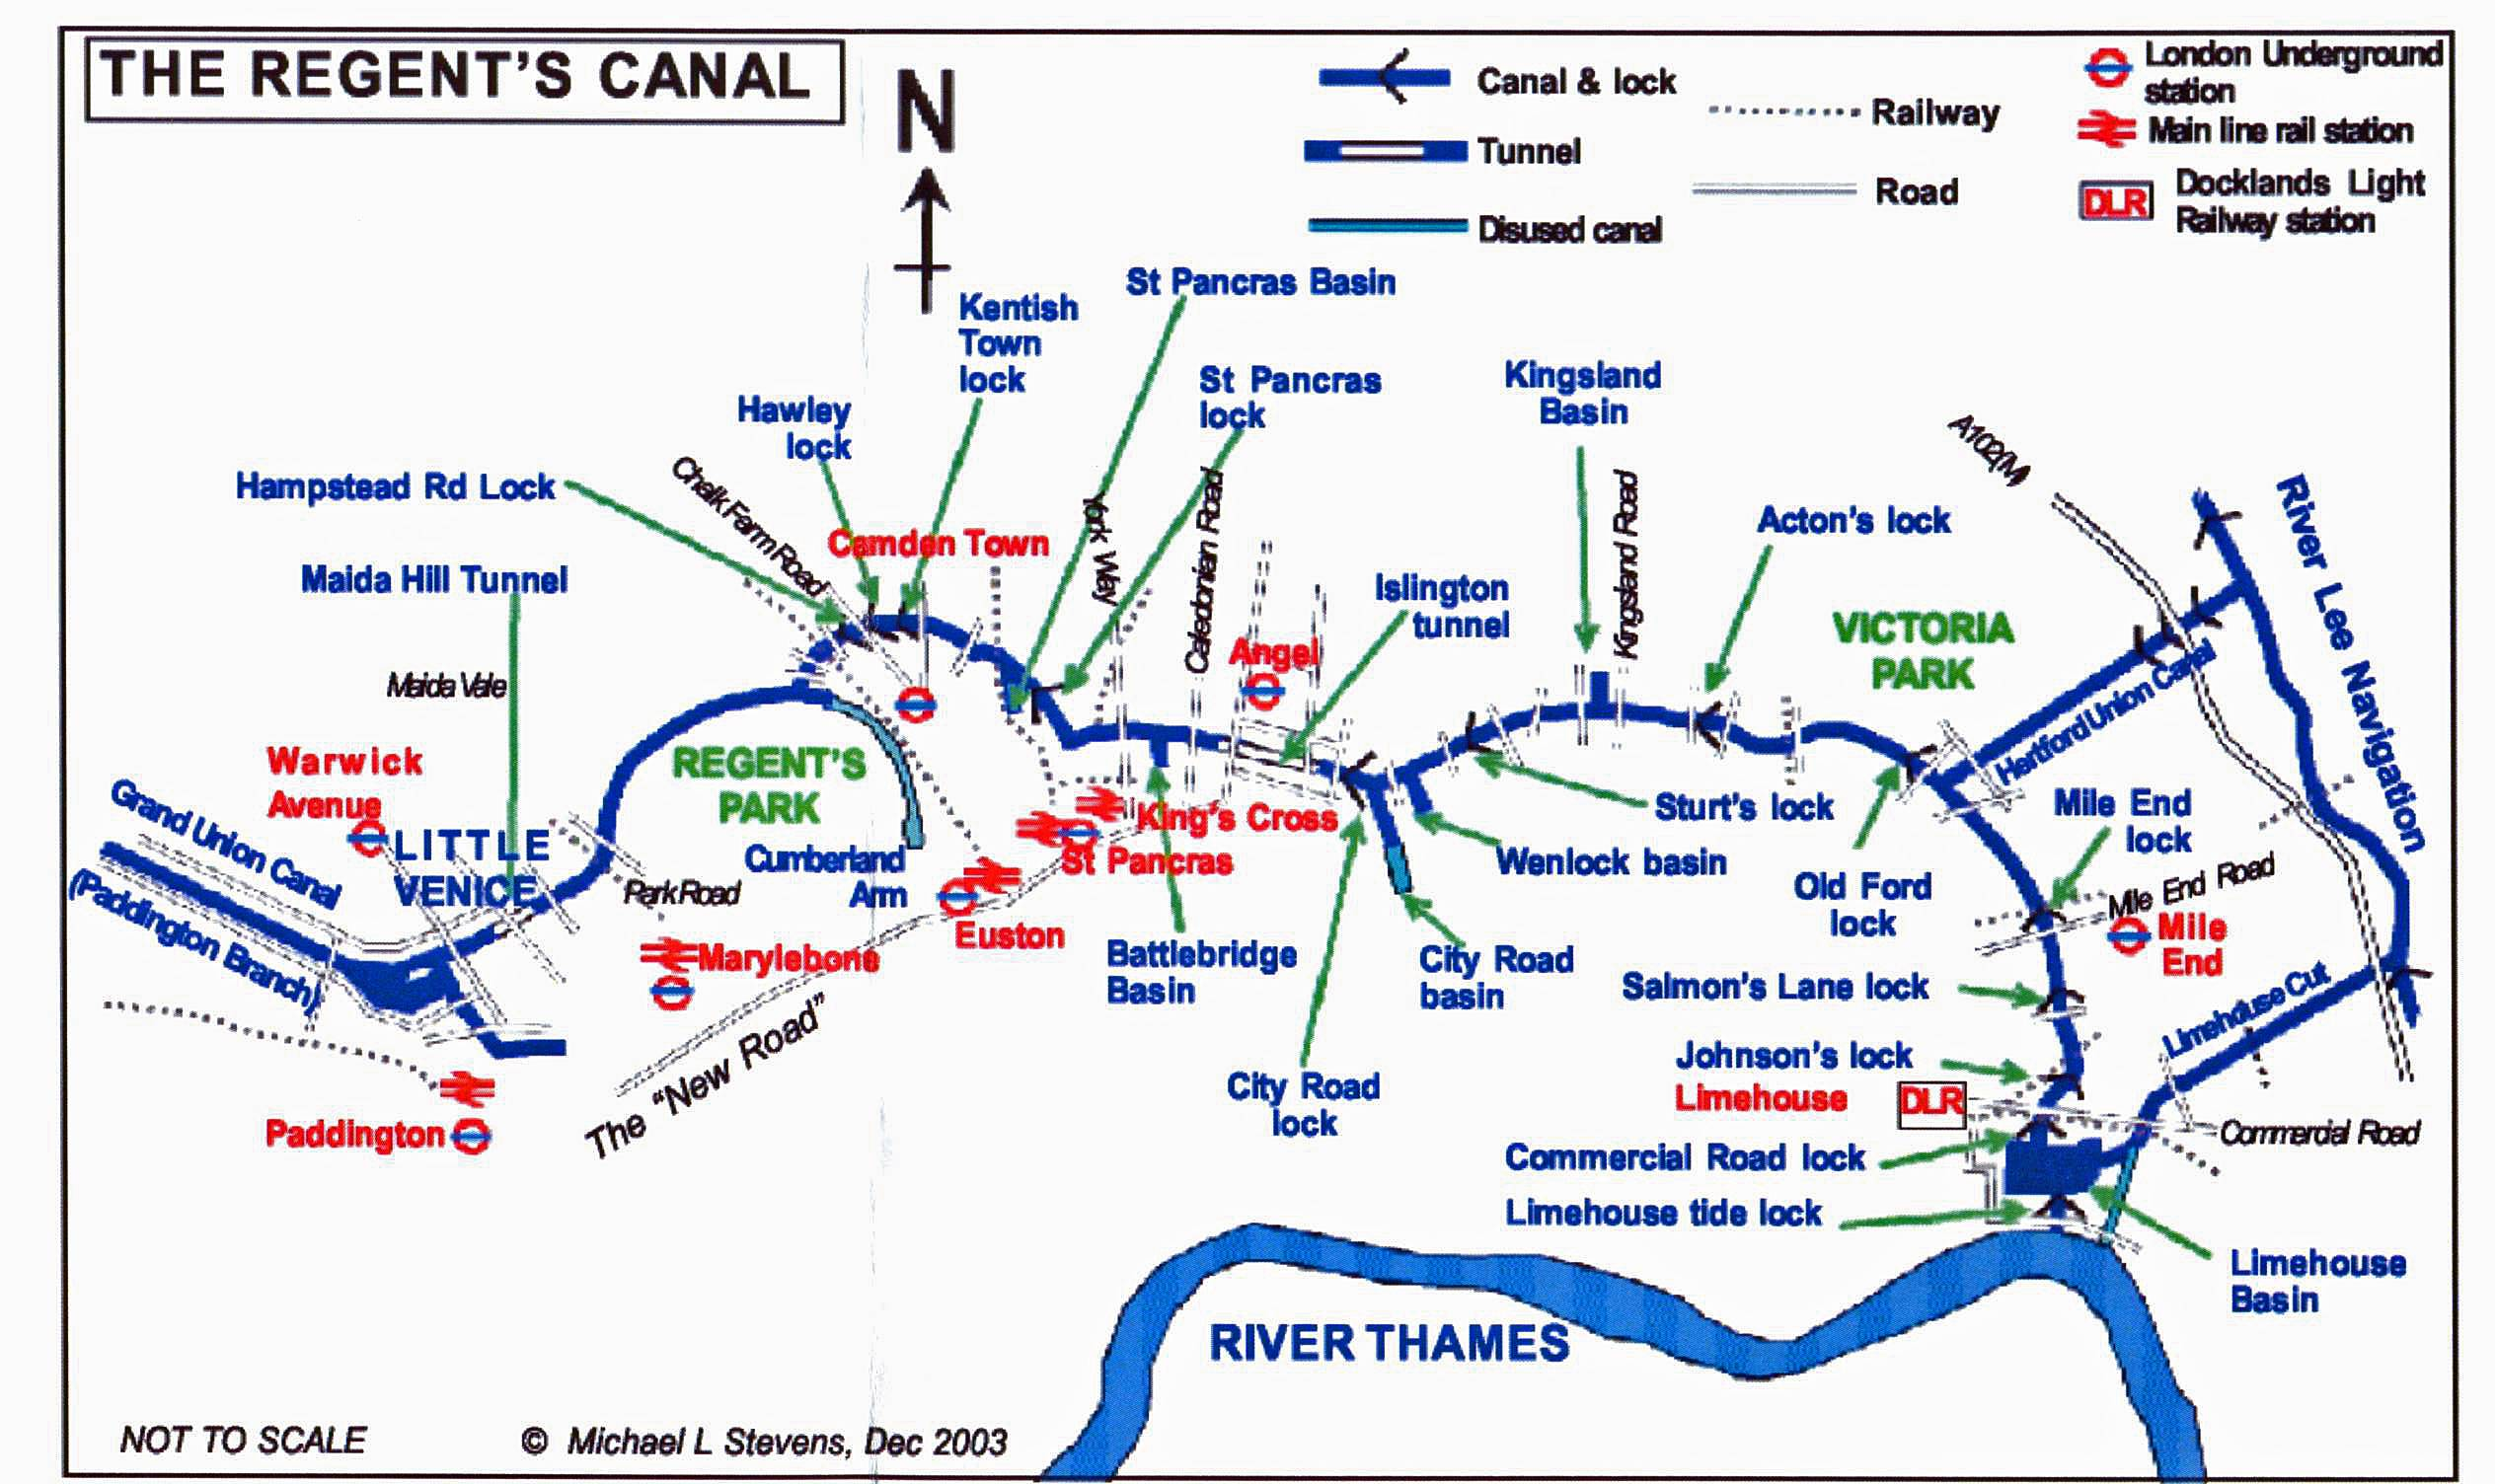 Index Of FeaturestourismCICAughistorypanelsimagesnow - Little venice map